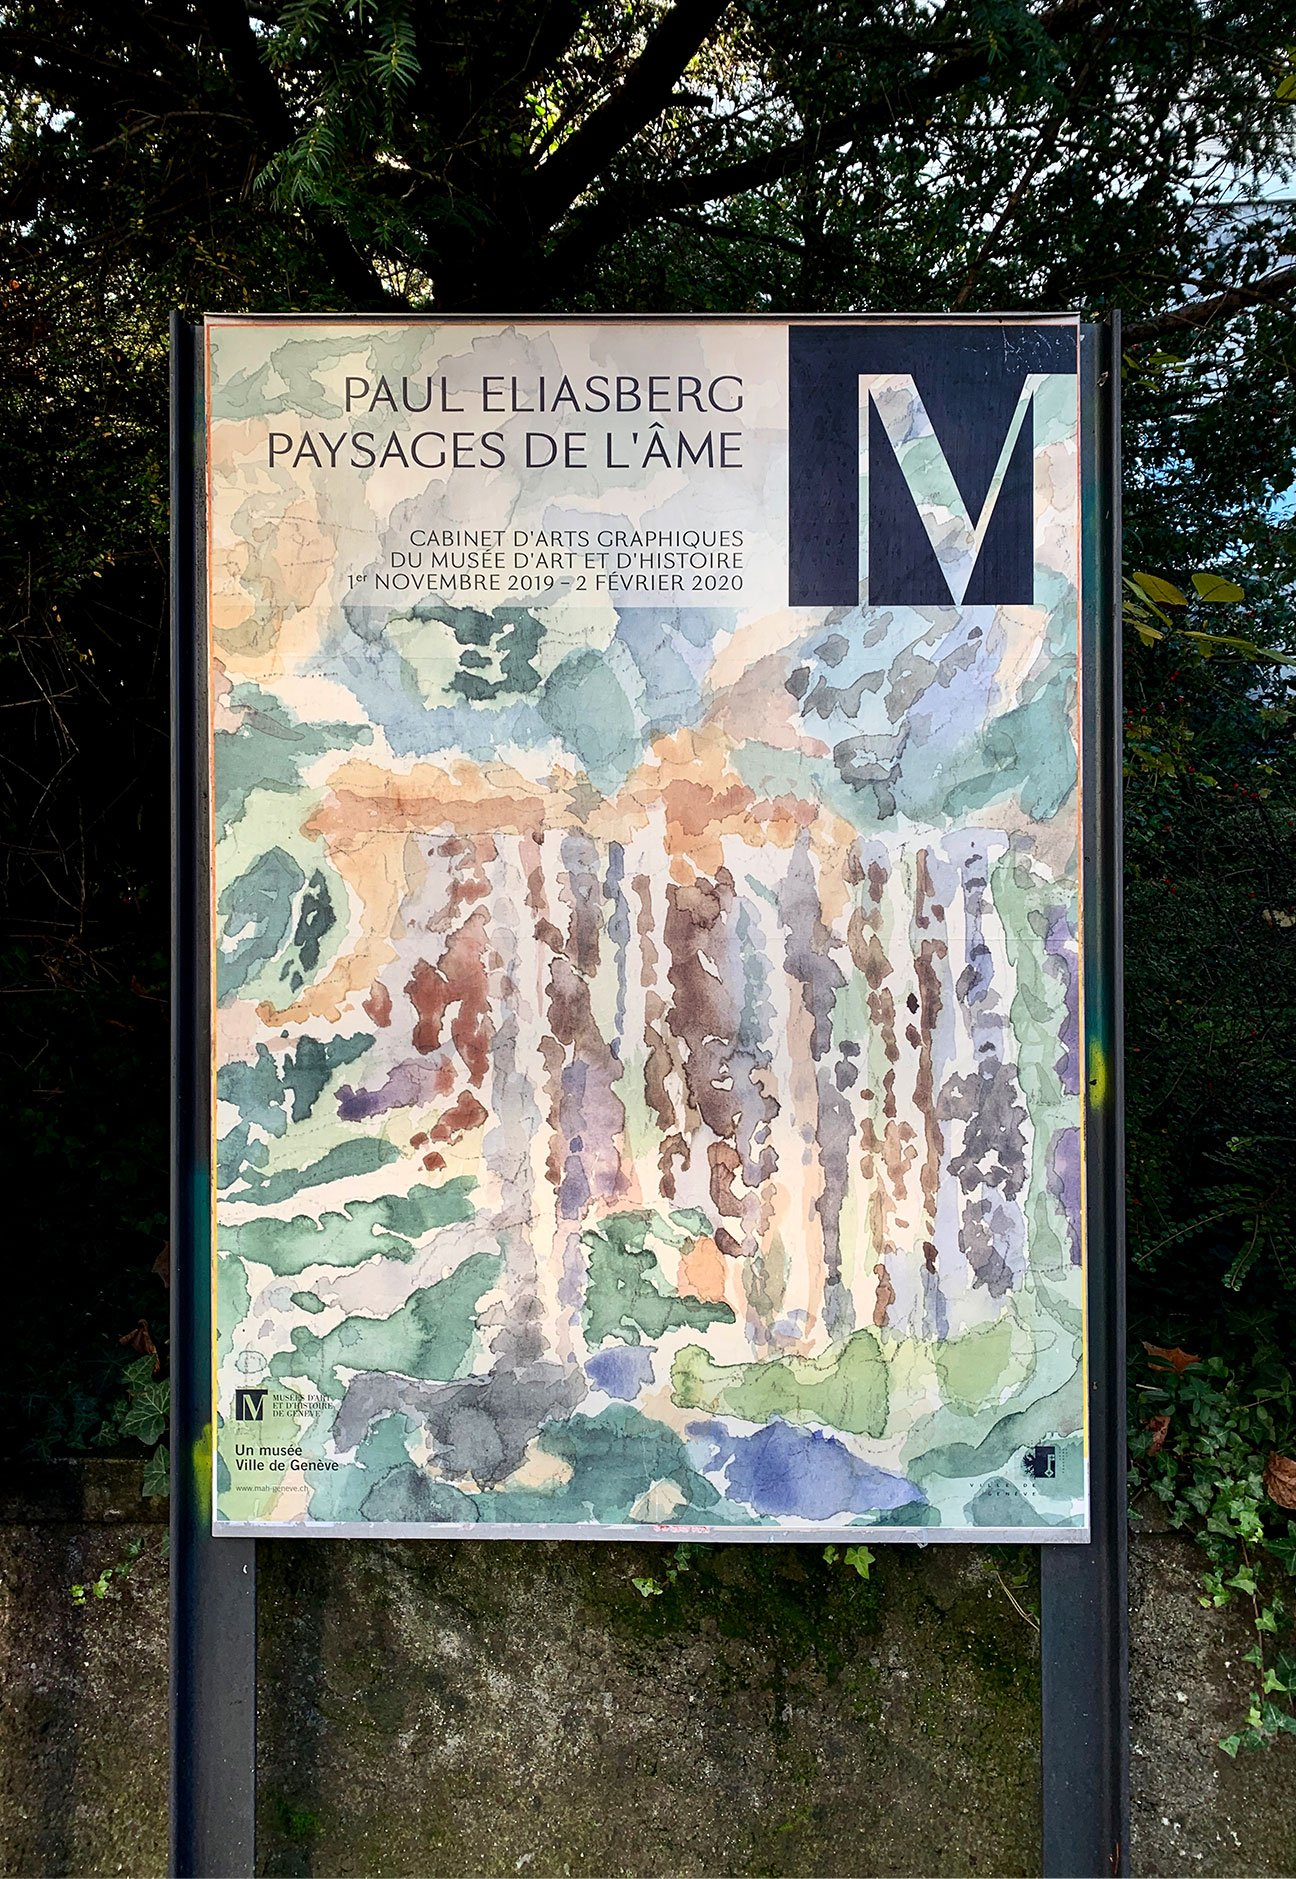 fabien_cuffel_graphisme_Affiche_F4_typographie_EXPO_ELIASBERG_geneve_musee_mah